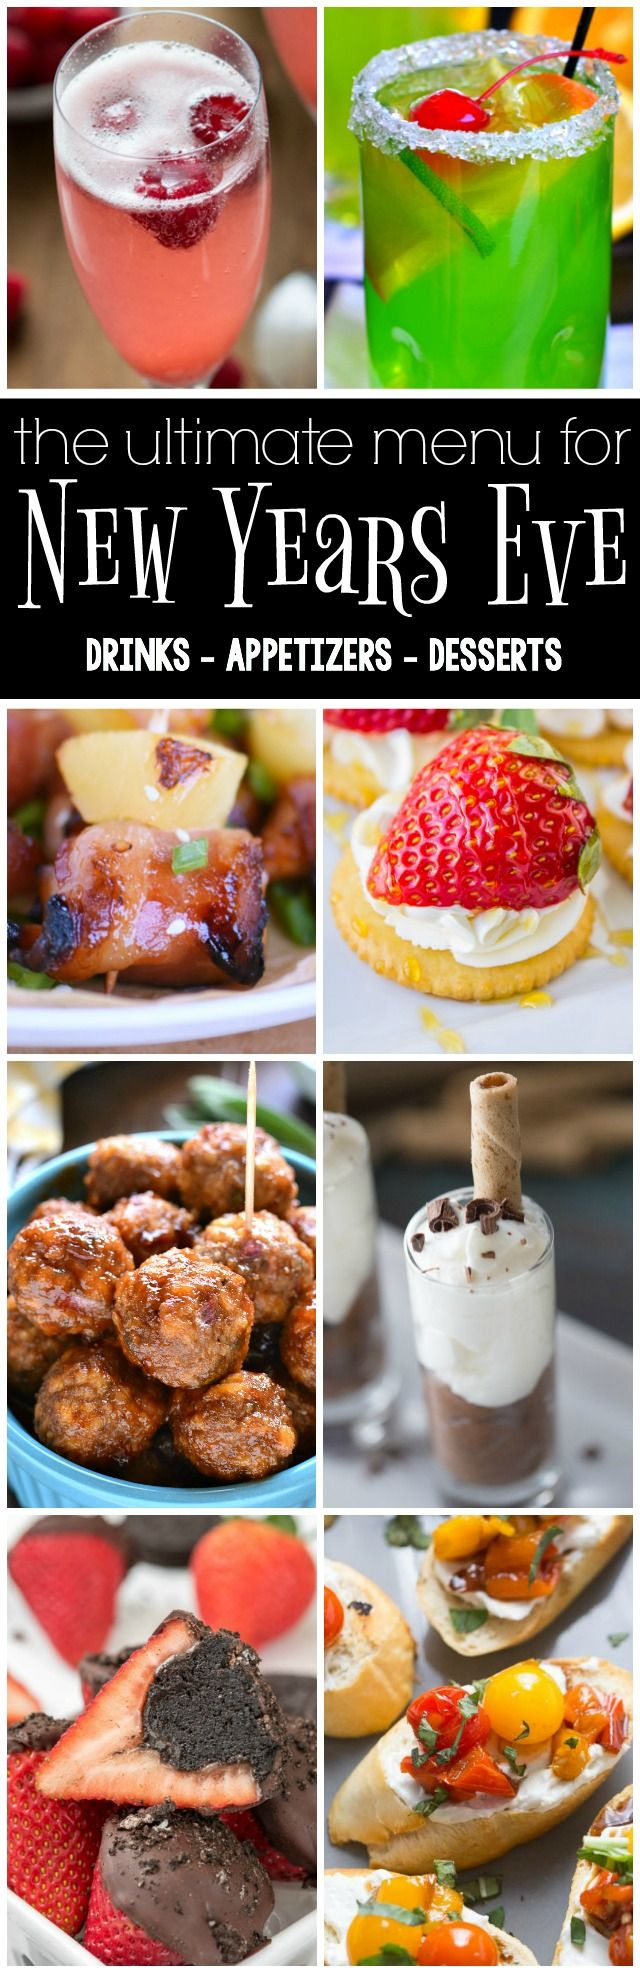 This is the ULTIMATE Menu New Year's Eve with 18 recipes for drinks, appetizers, and dessert! Make your New Year's Eve party exceptional this year!